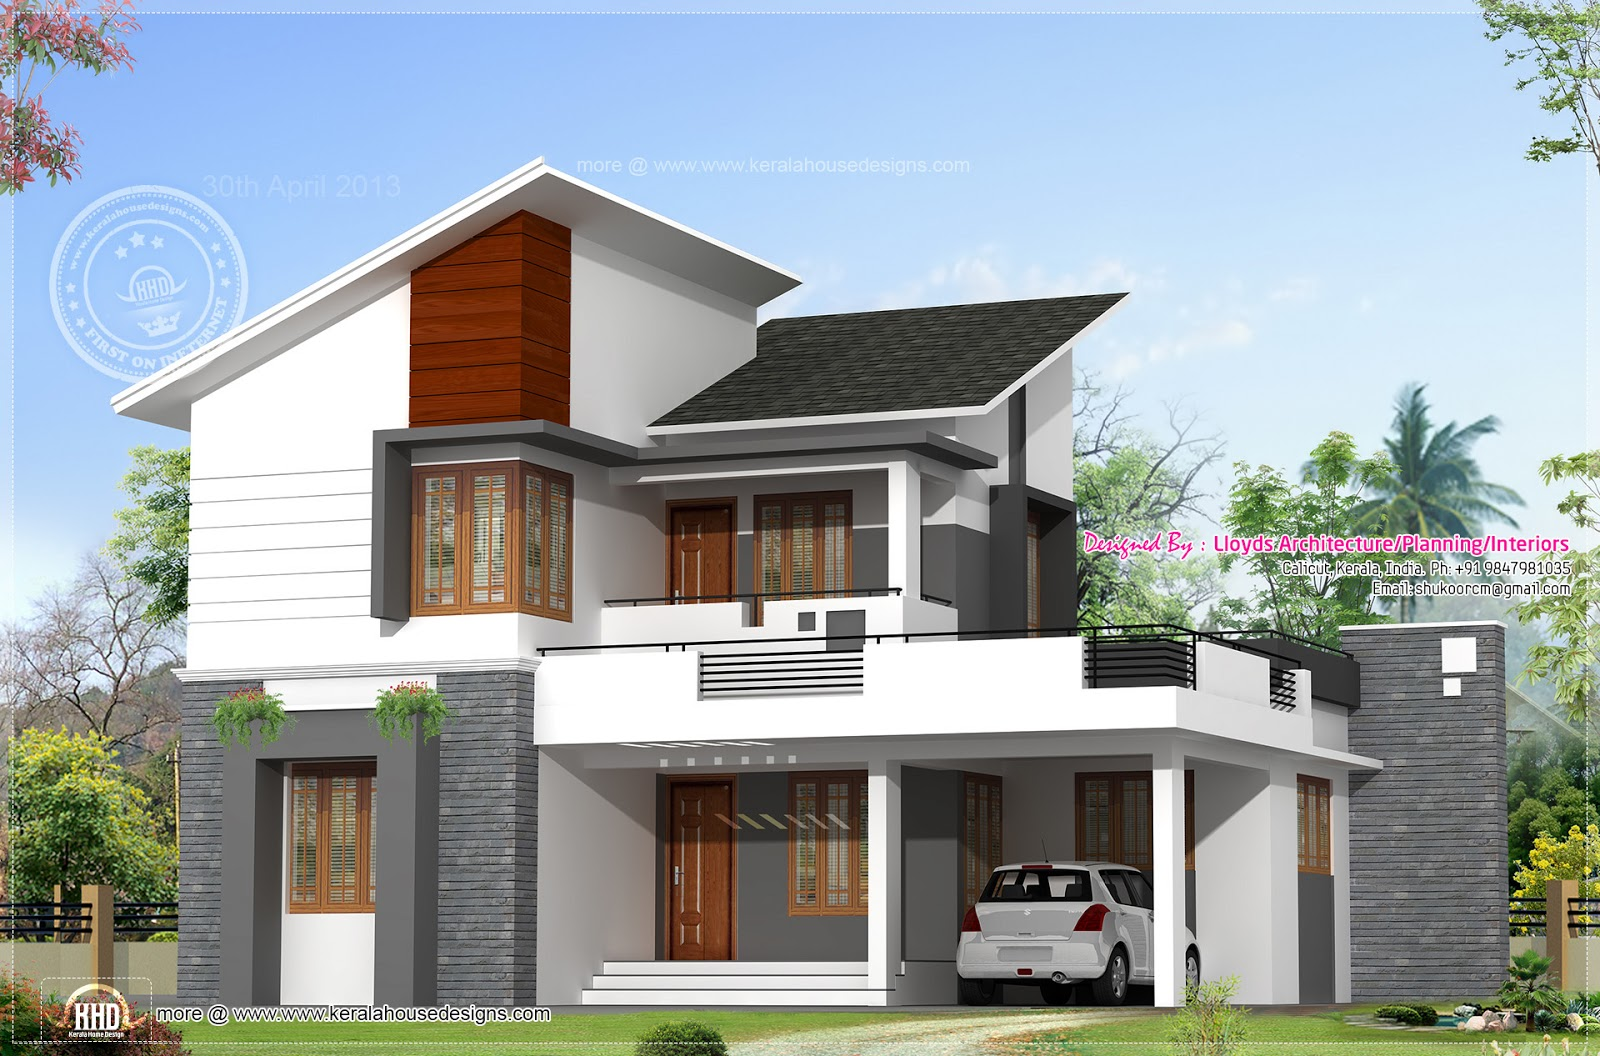 Modern tropical house design modern house designs and for Modern tropical home designs